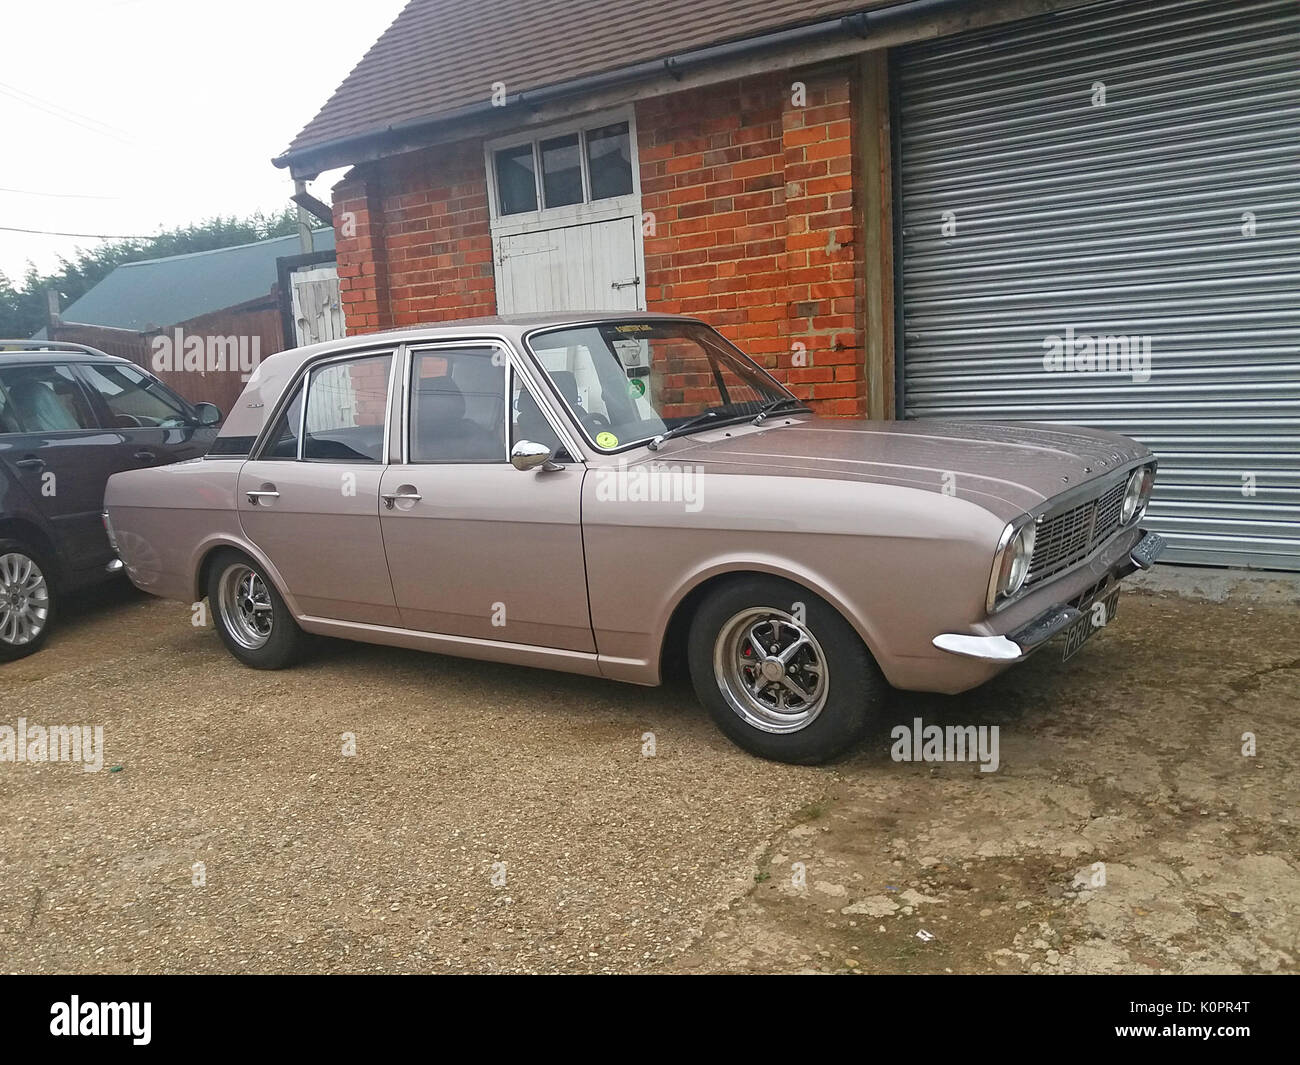 vintage ford cortina stock photos vintage ford cortina. Black Bedroom Furniture Sets. Home Design Ideas